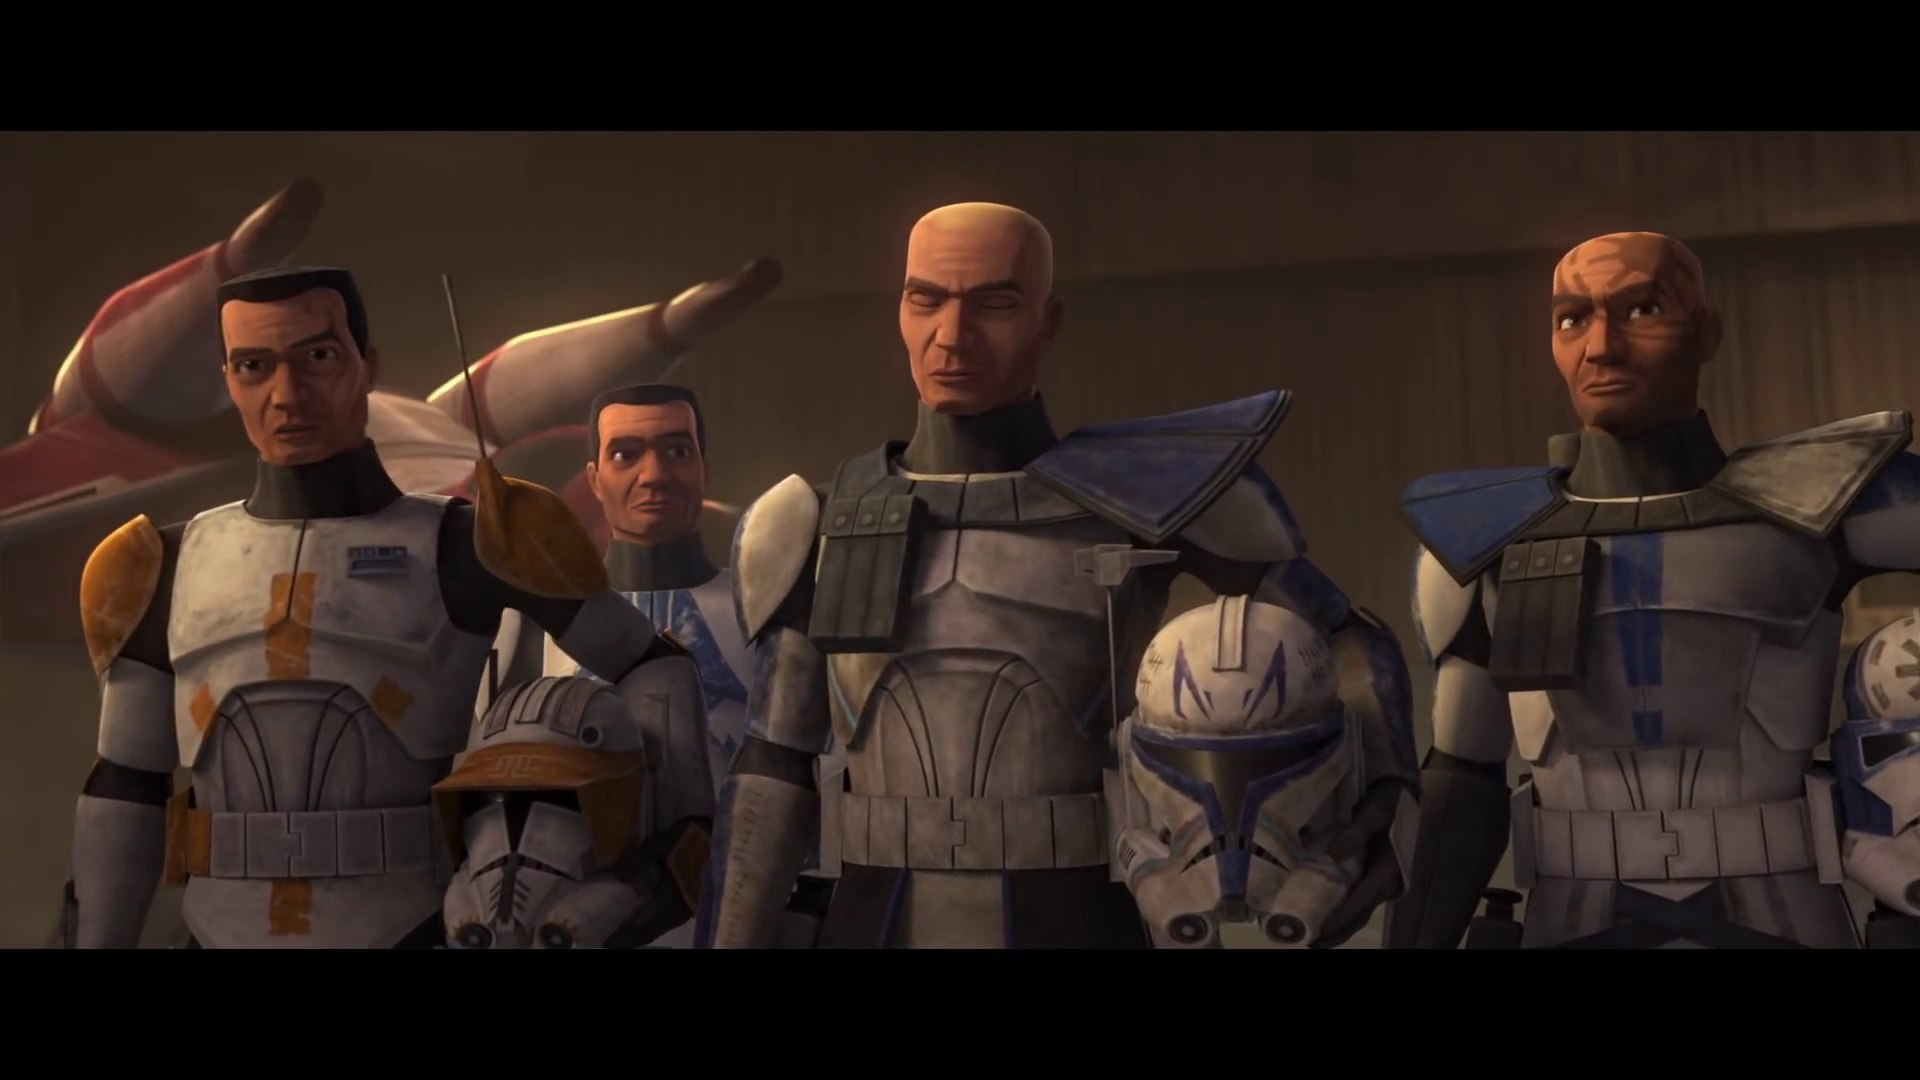 Star Wars The Clone Wars The Bad Batch Clip Disney 1080p Video Dailymotion